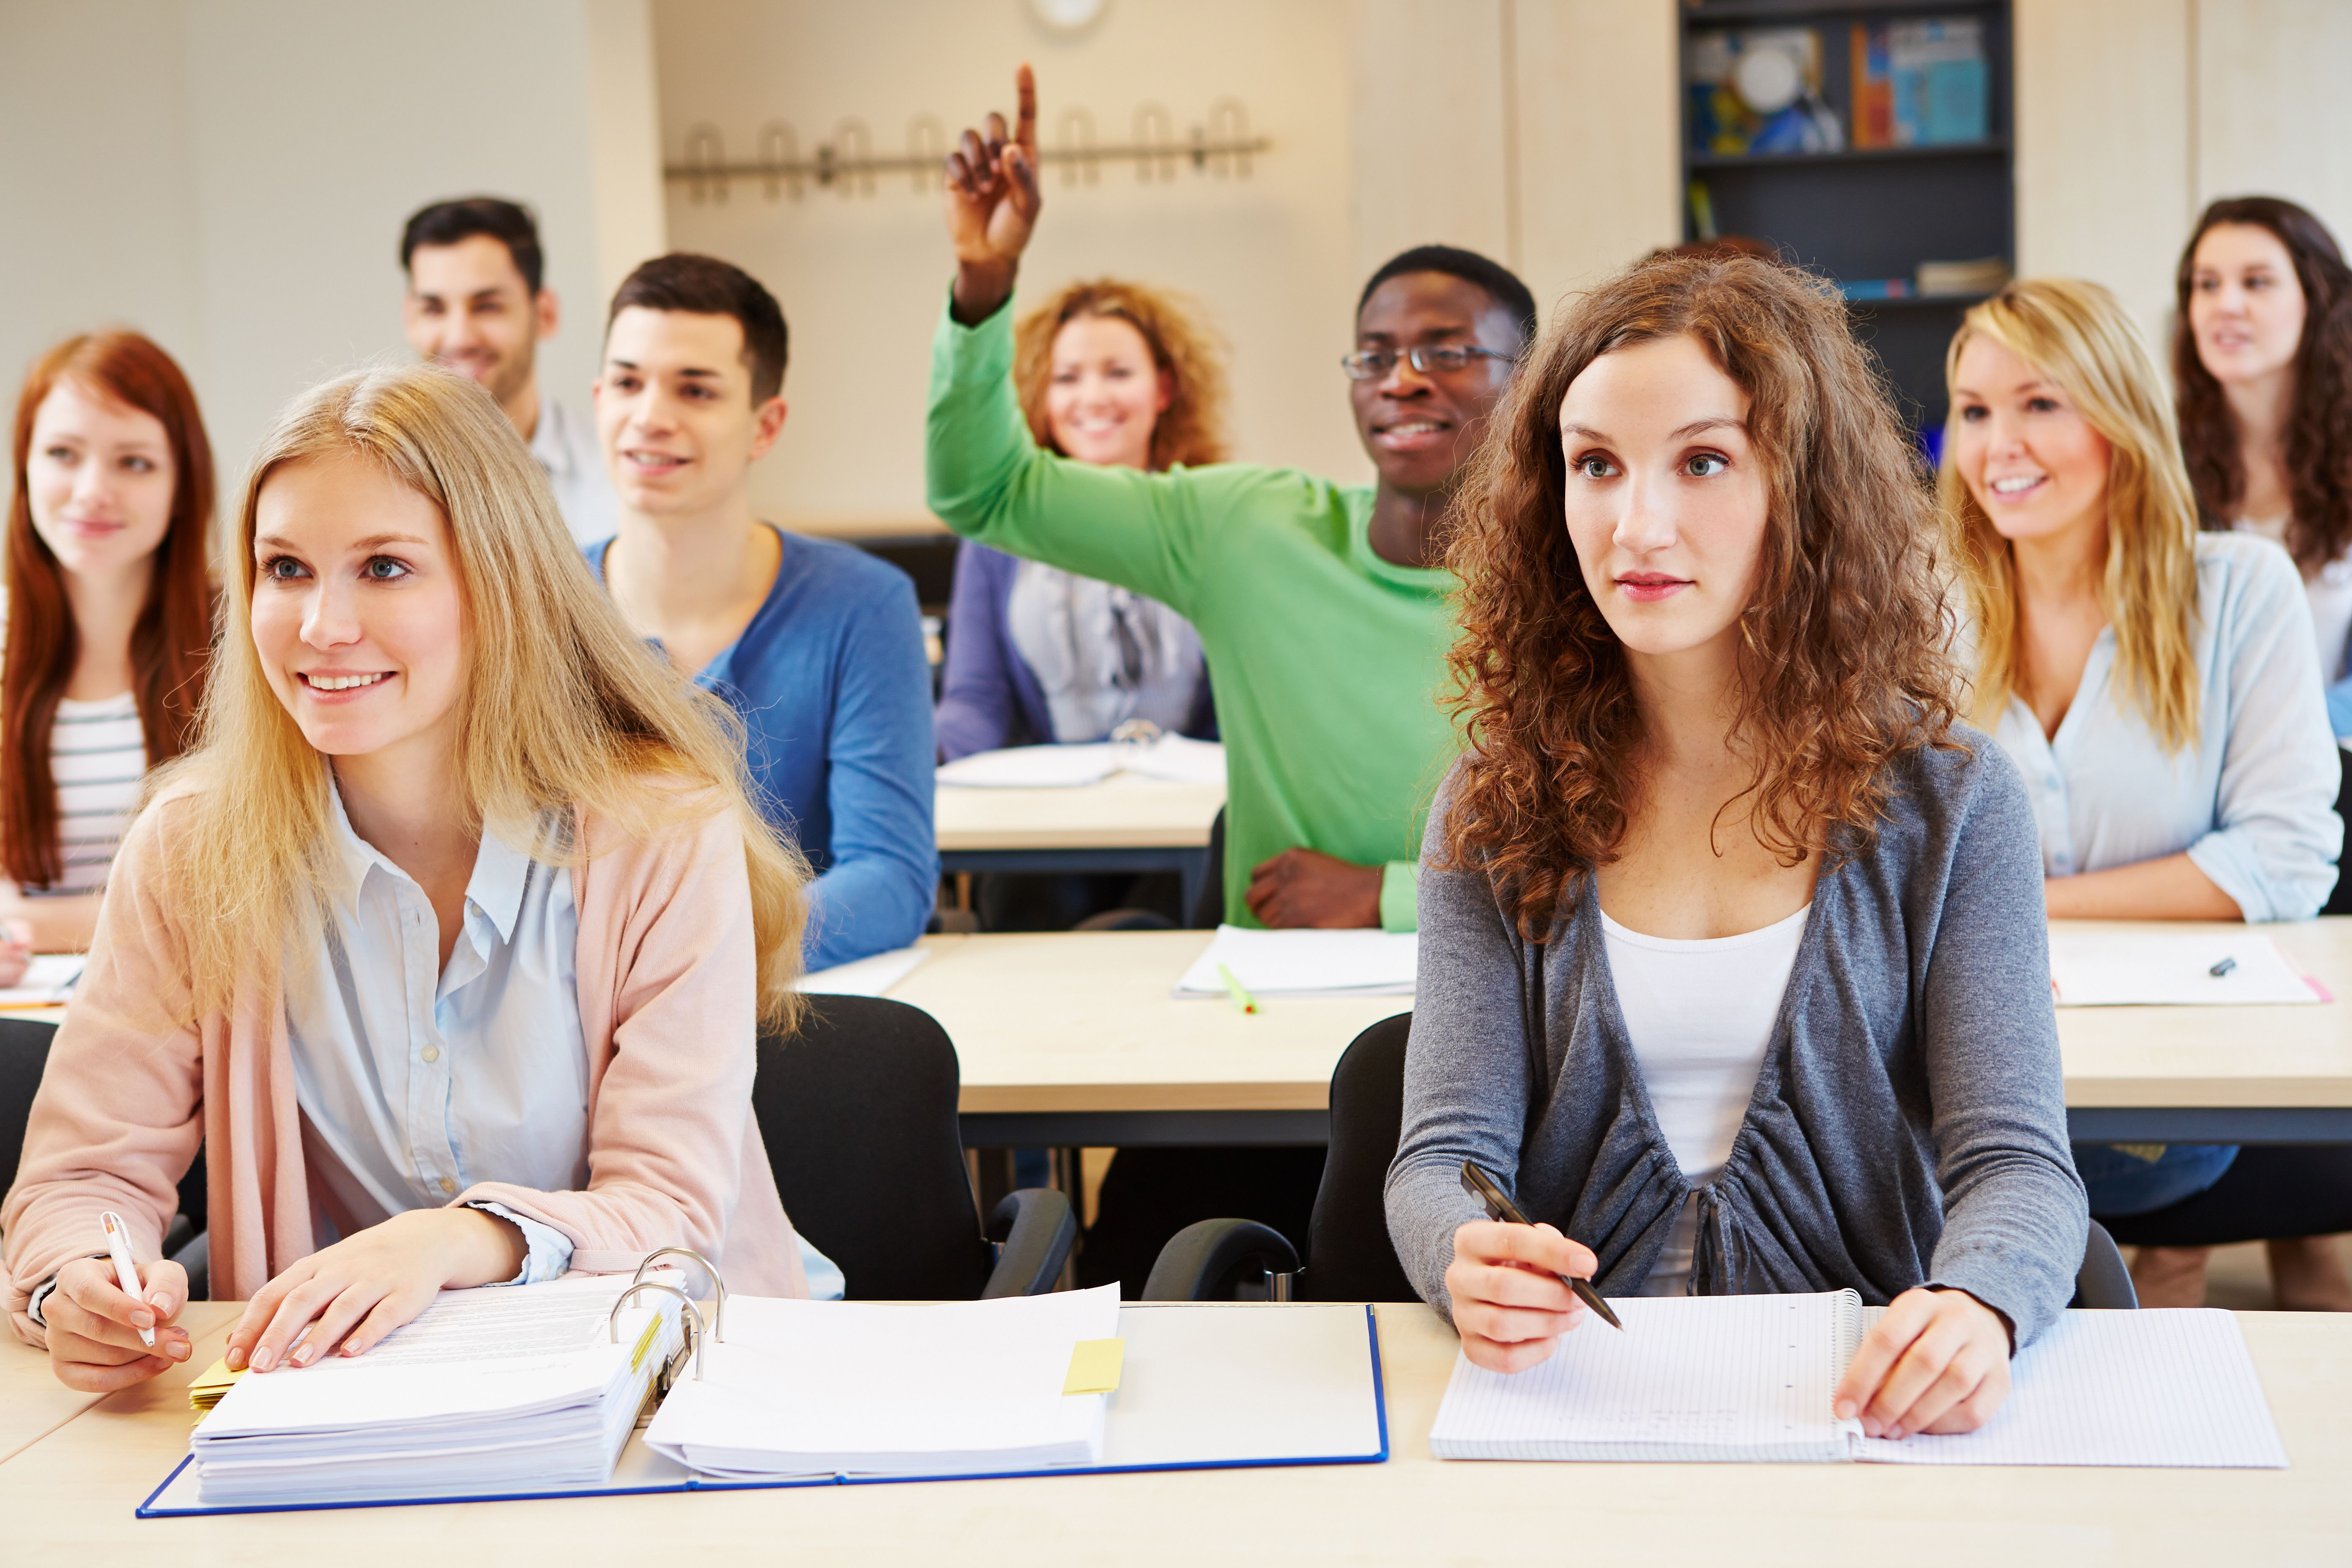 Chiropractic how studying many subjects in college benefit